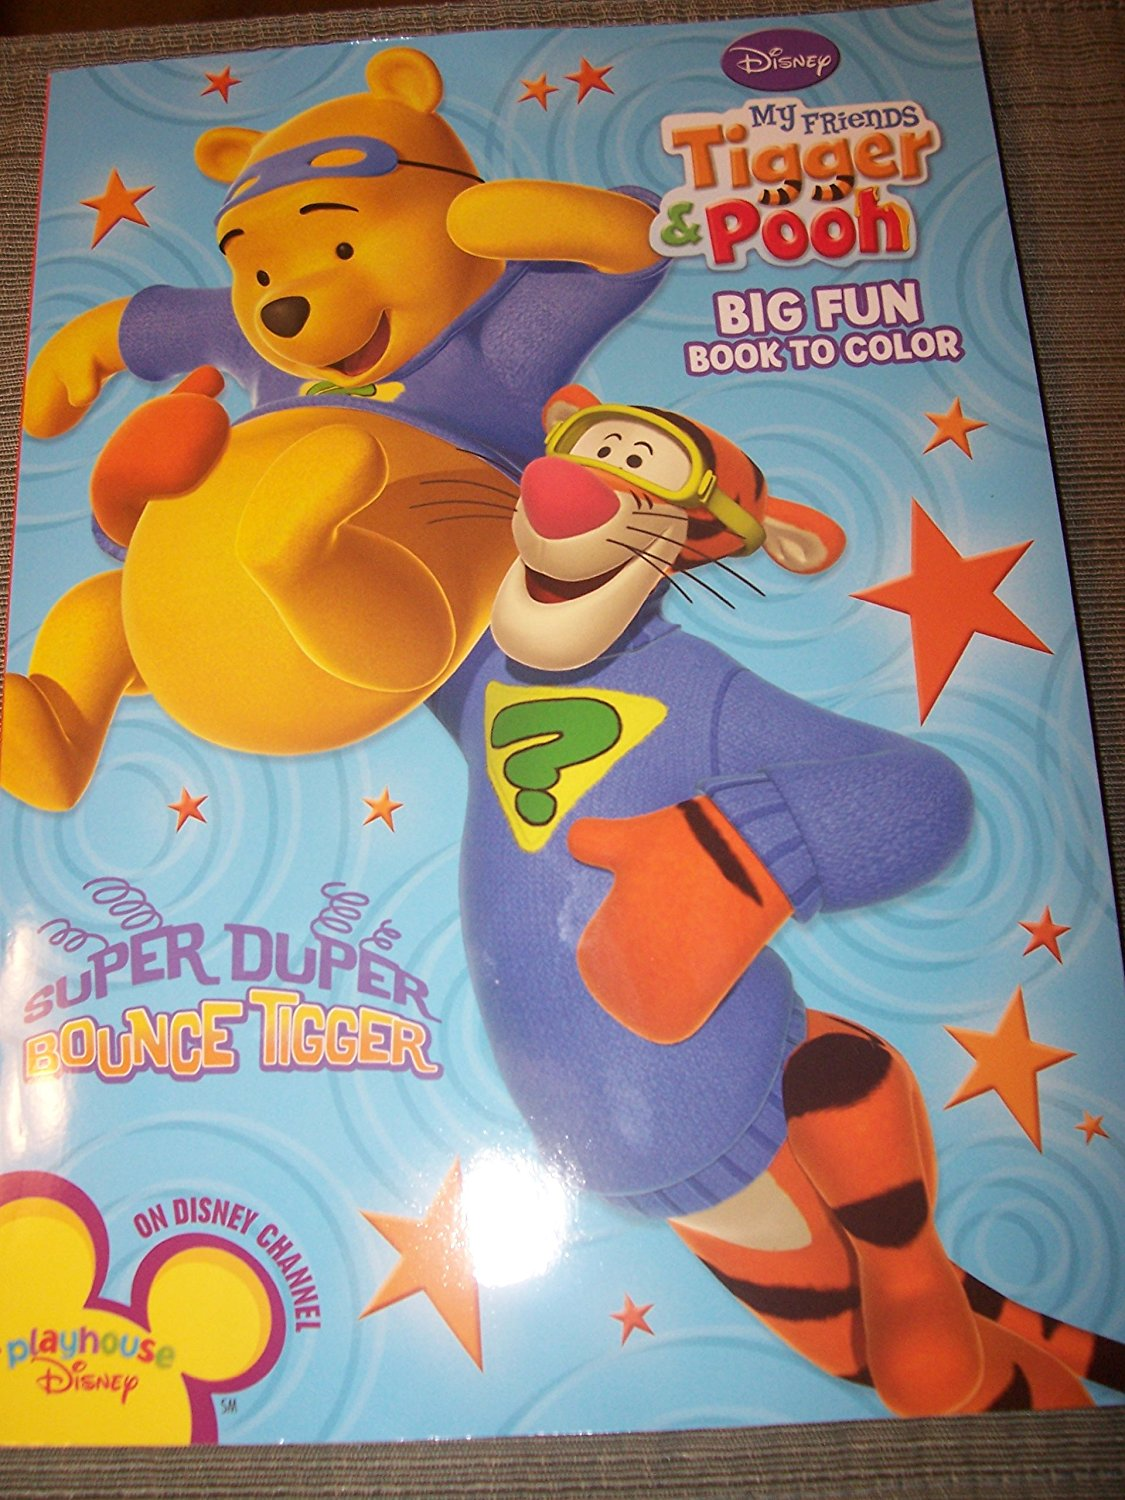 Disney My Friends Tigger & Pooh Big Fun Book To Color ~ Super Duper Bounce Tigger (96 Pages)